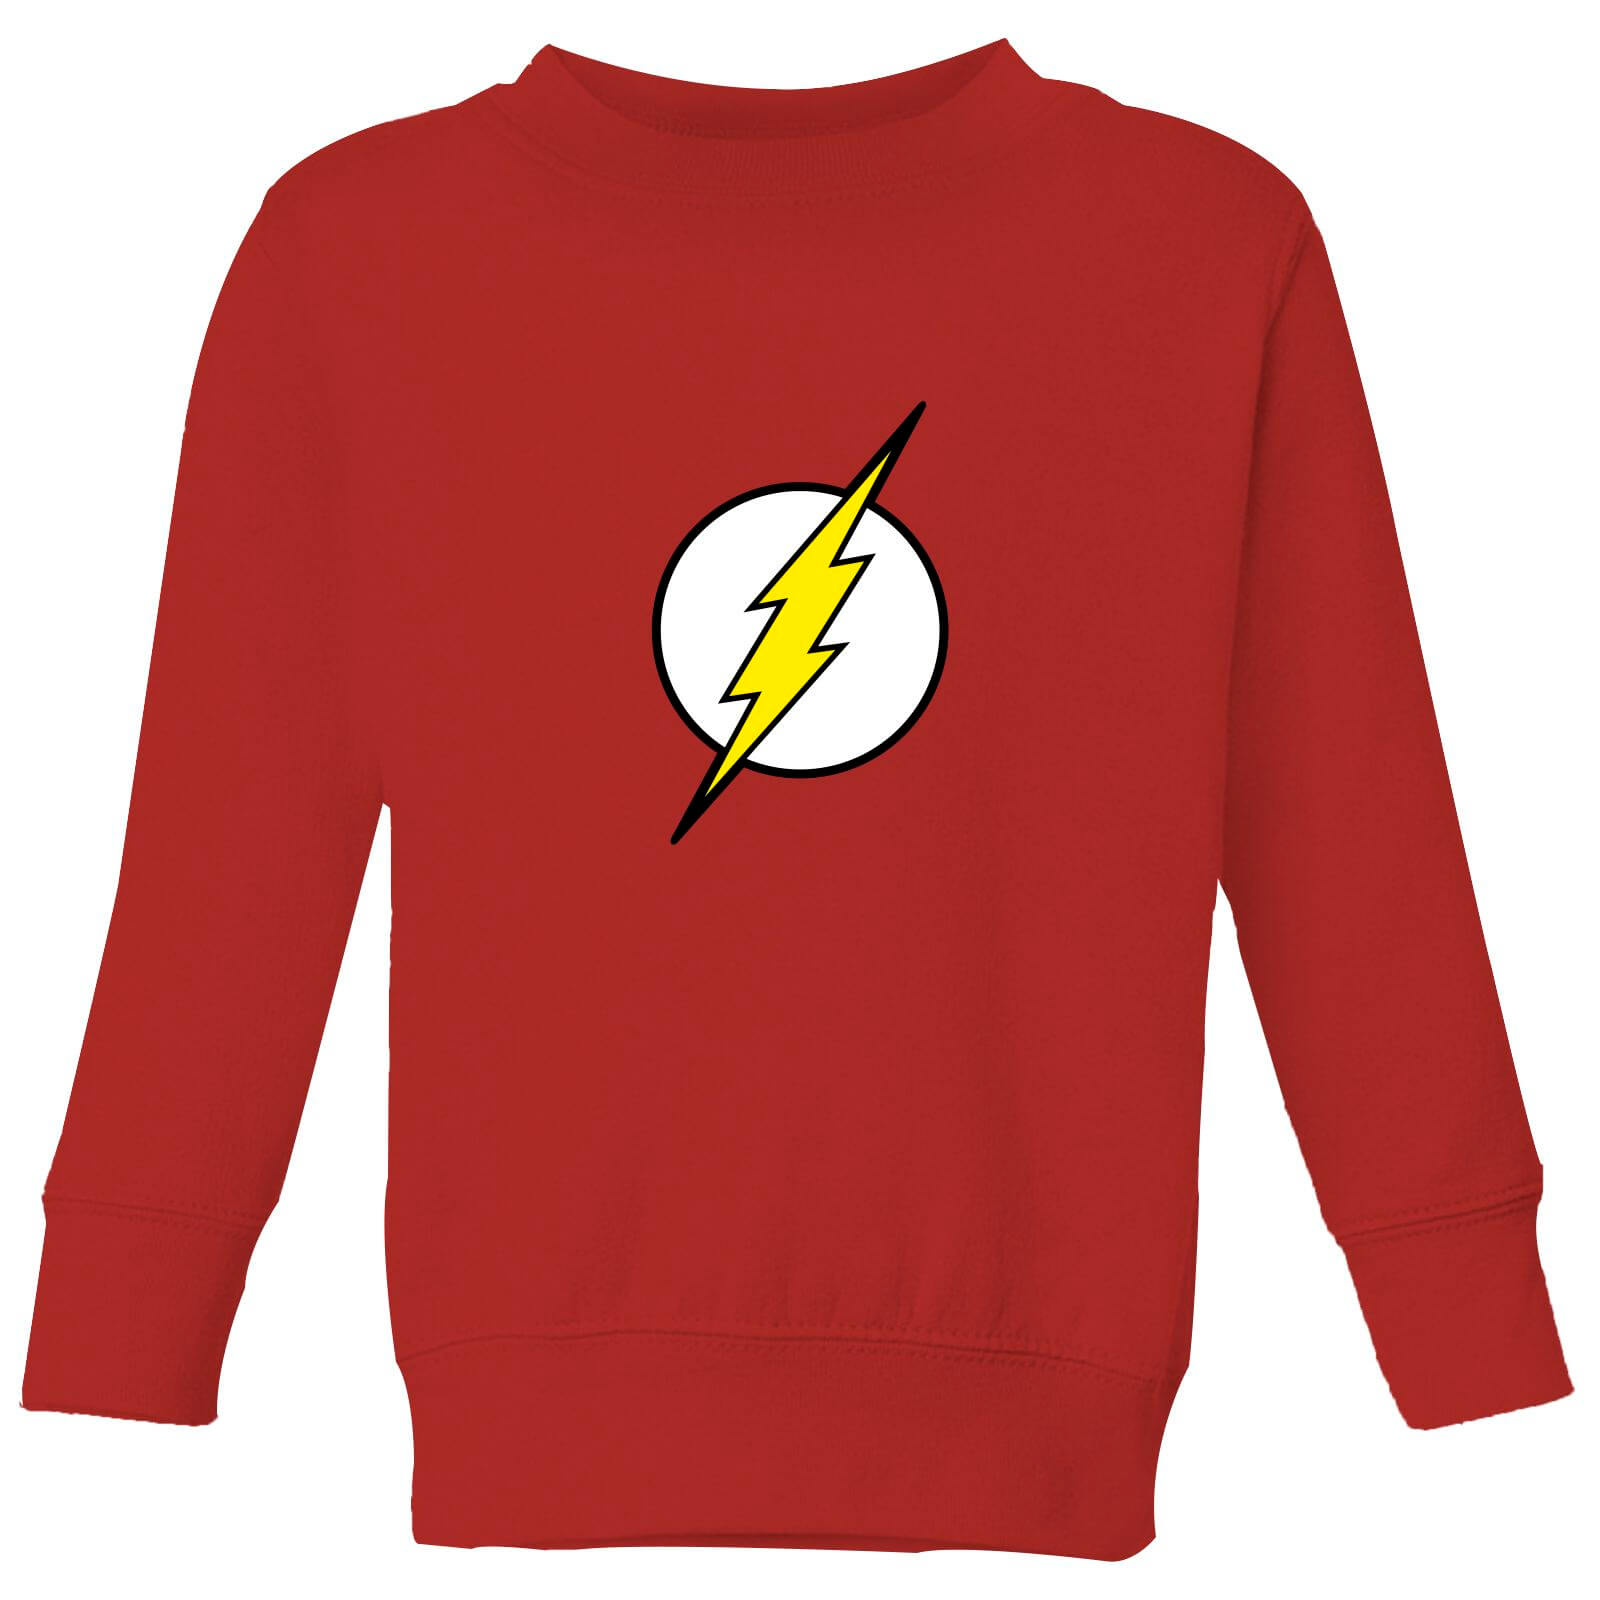 Justice League Flash Logo Kids' Sweatshirt - Red - 7-8 años - Rojo de DC Comics